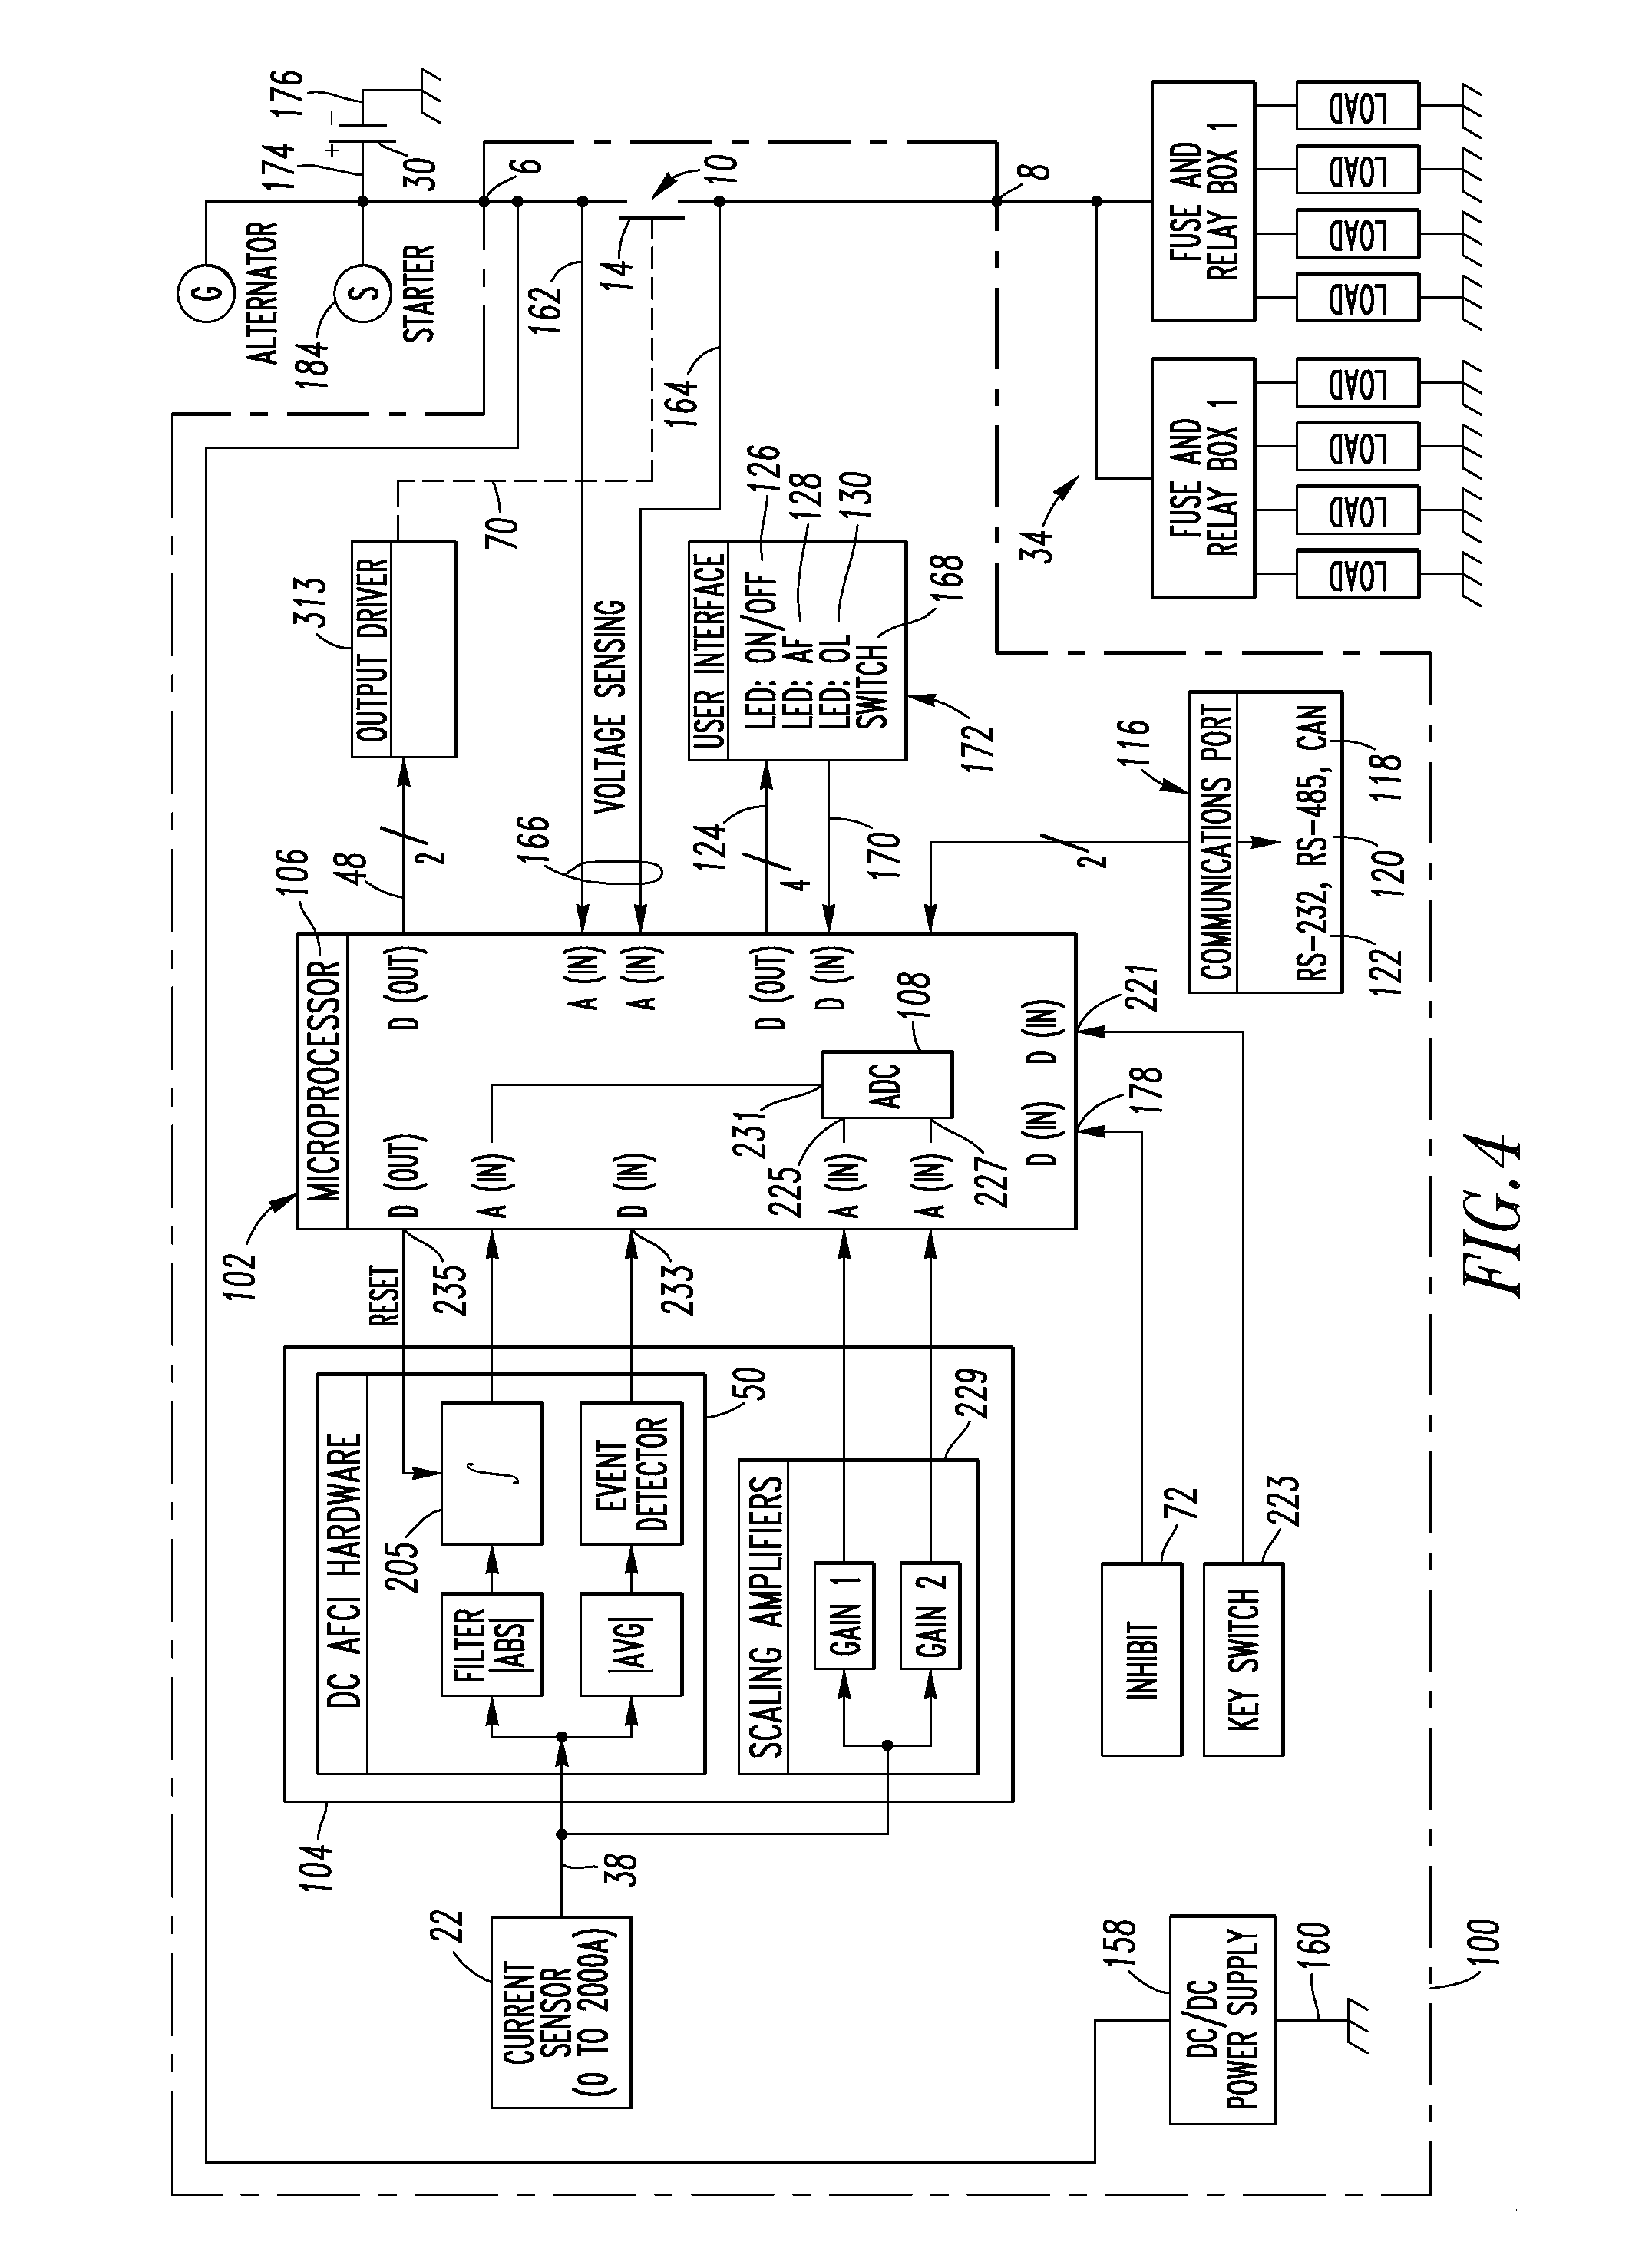 Magnetek Power Converter Wiring Diagram